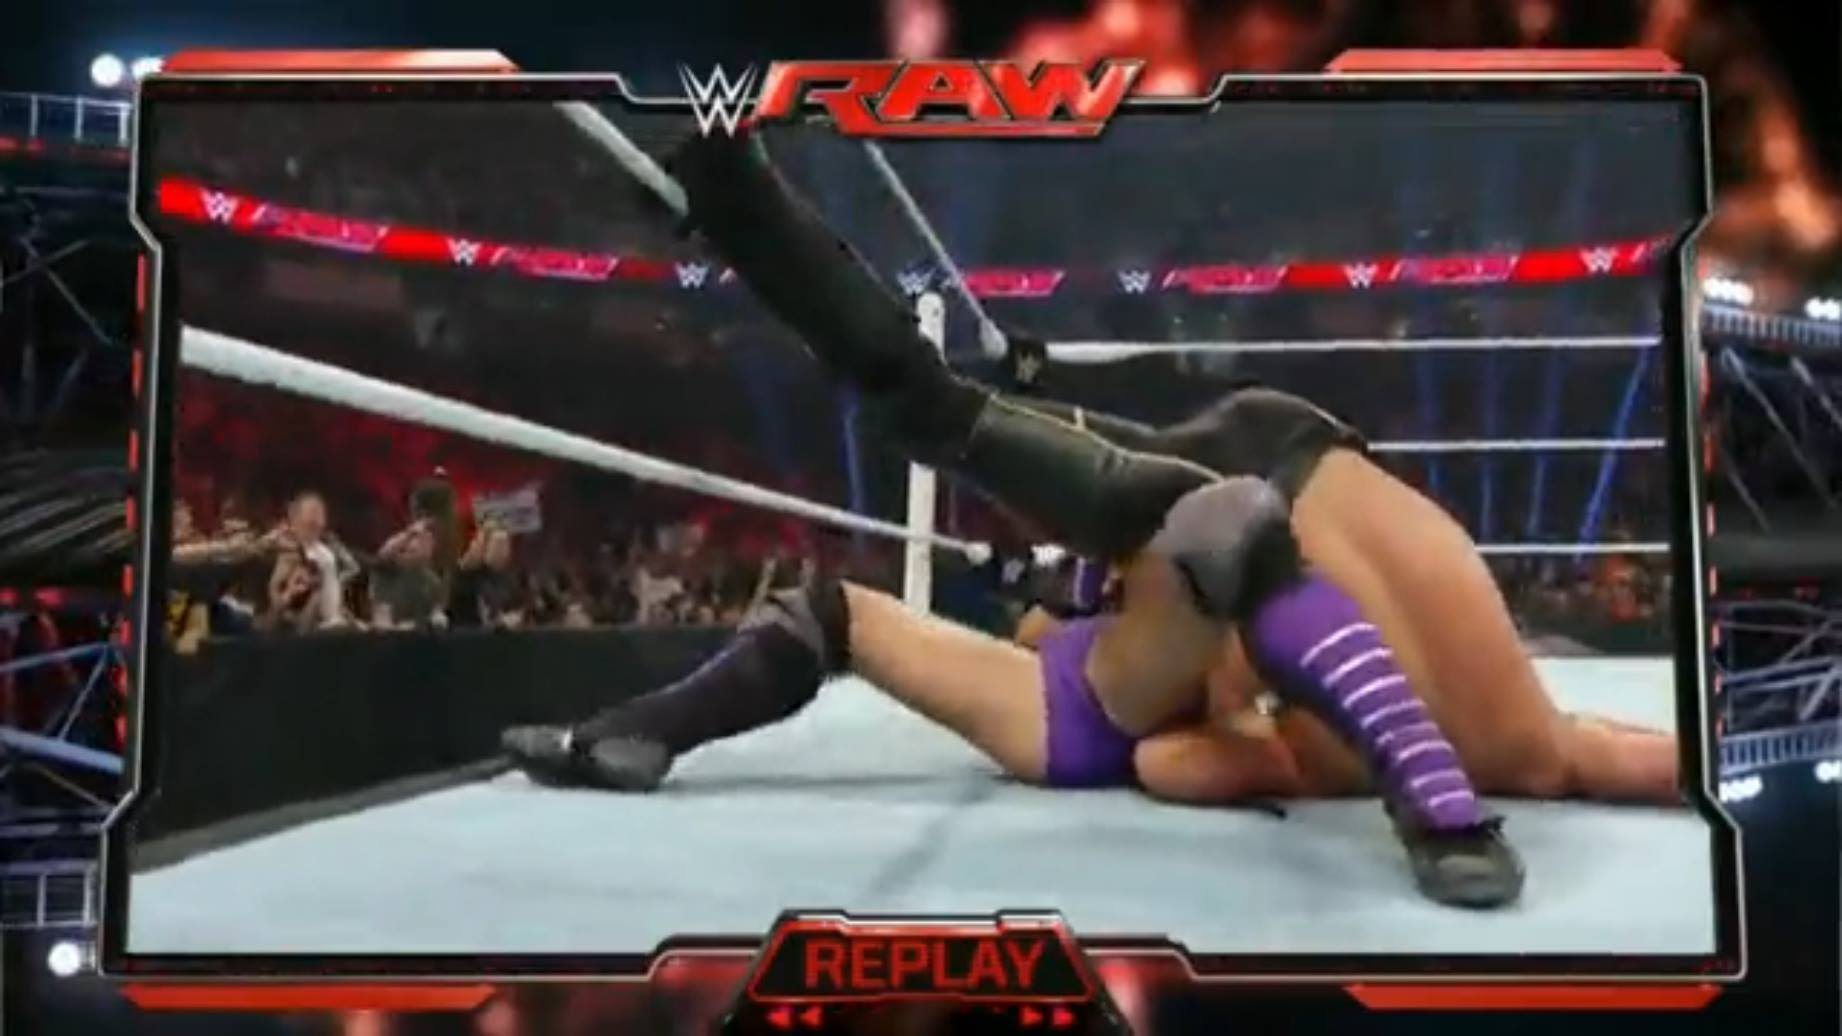 WWE RAW 8/3/2015 REVIEW - Neville Almost Shocks The World!